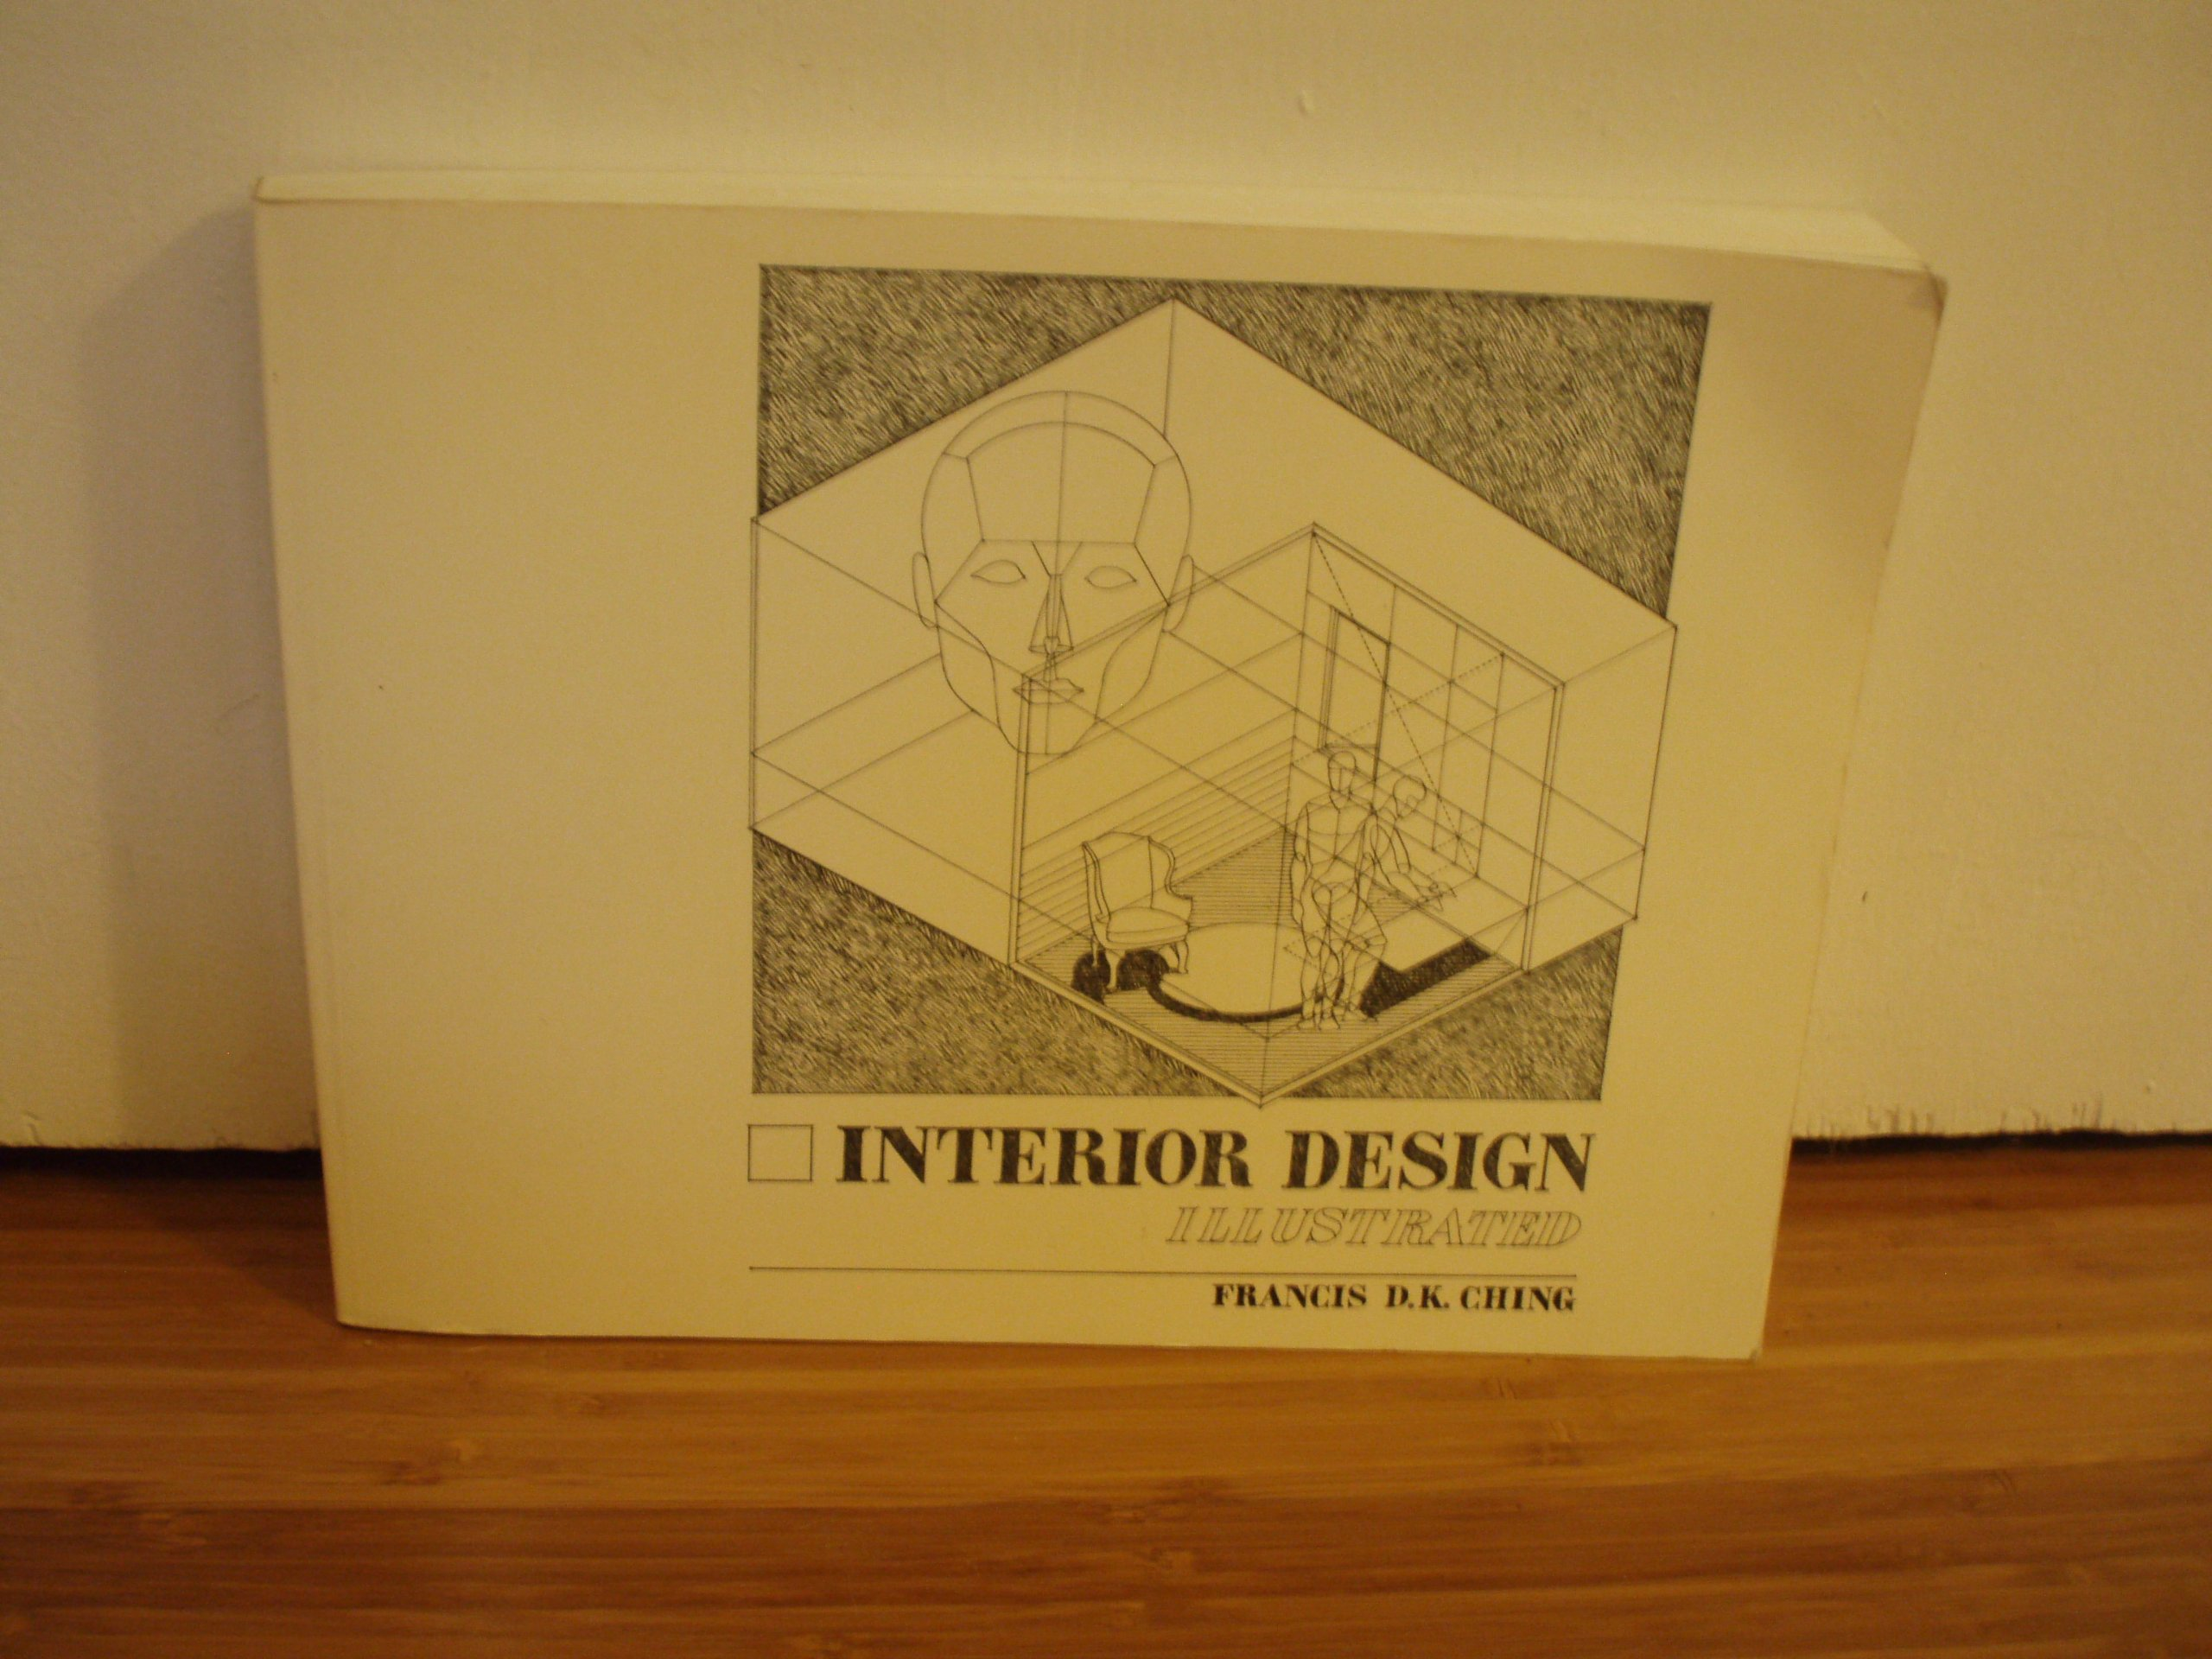 john design dp aaron textbooks com architecture daniel stine using autodesk books interior hansen amazon revit